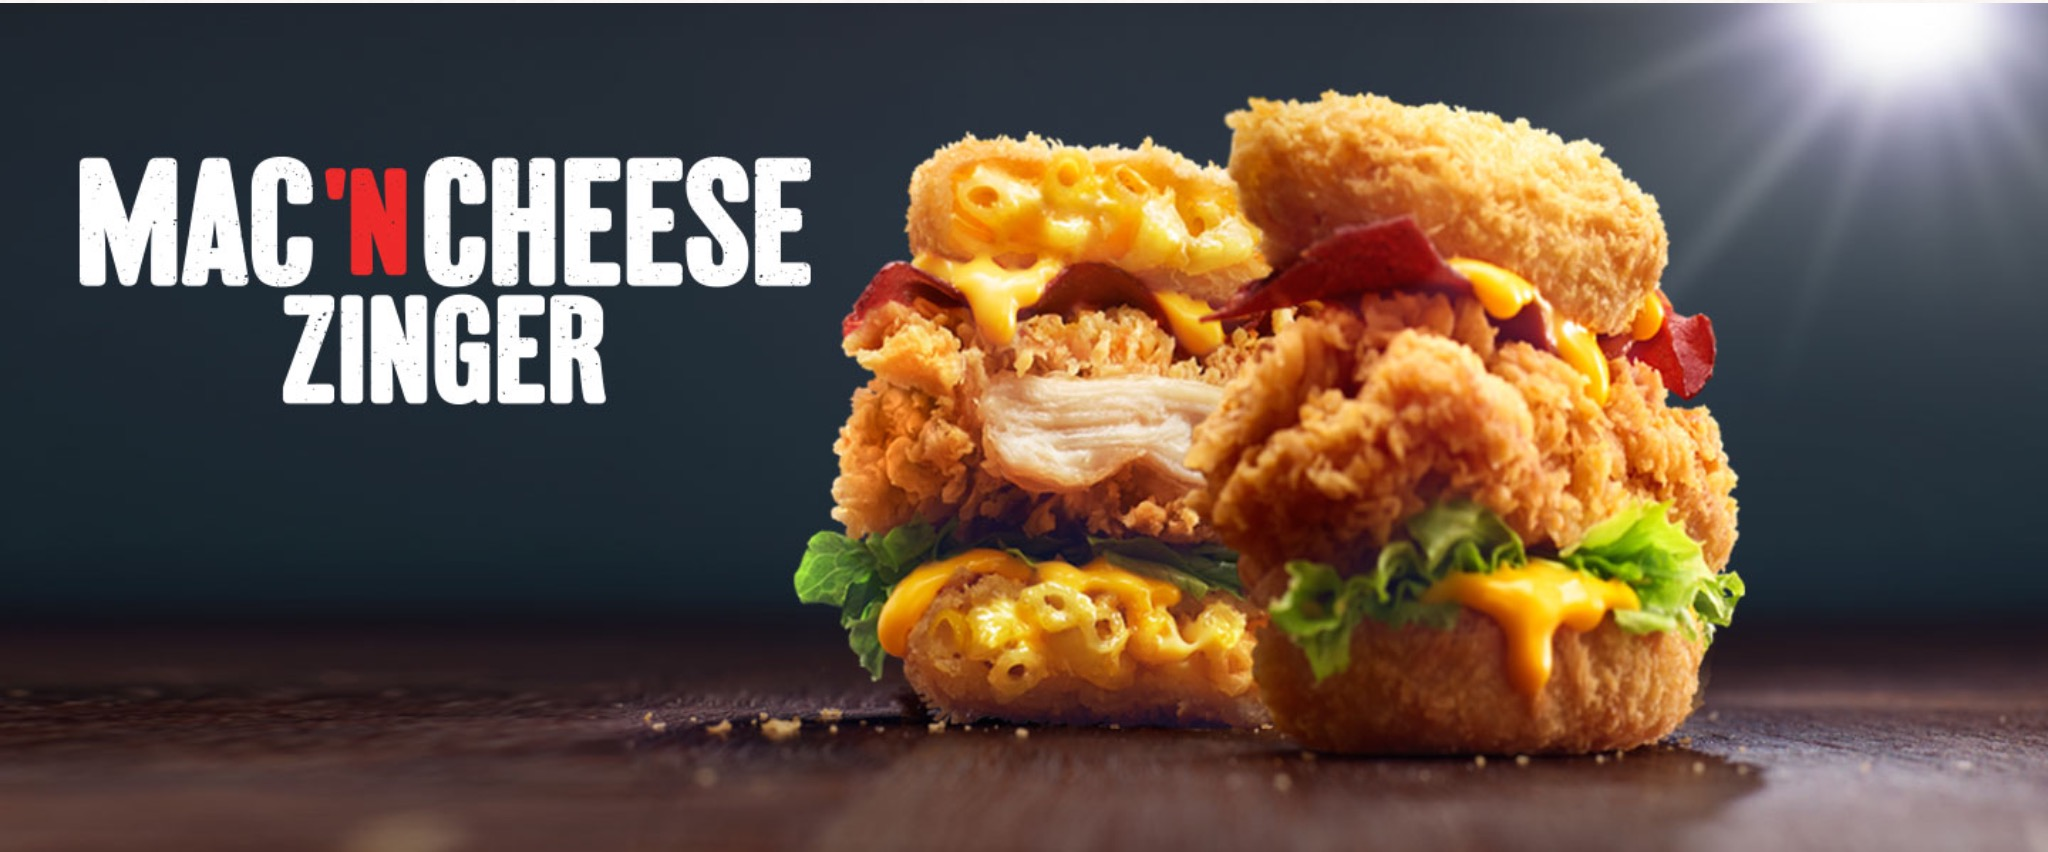 Mac 'N Cheese Zinger